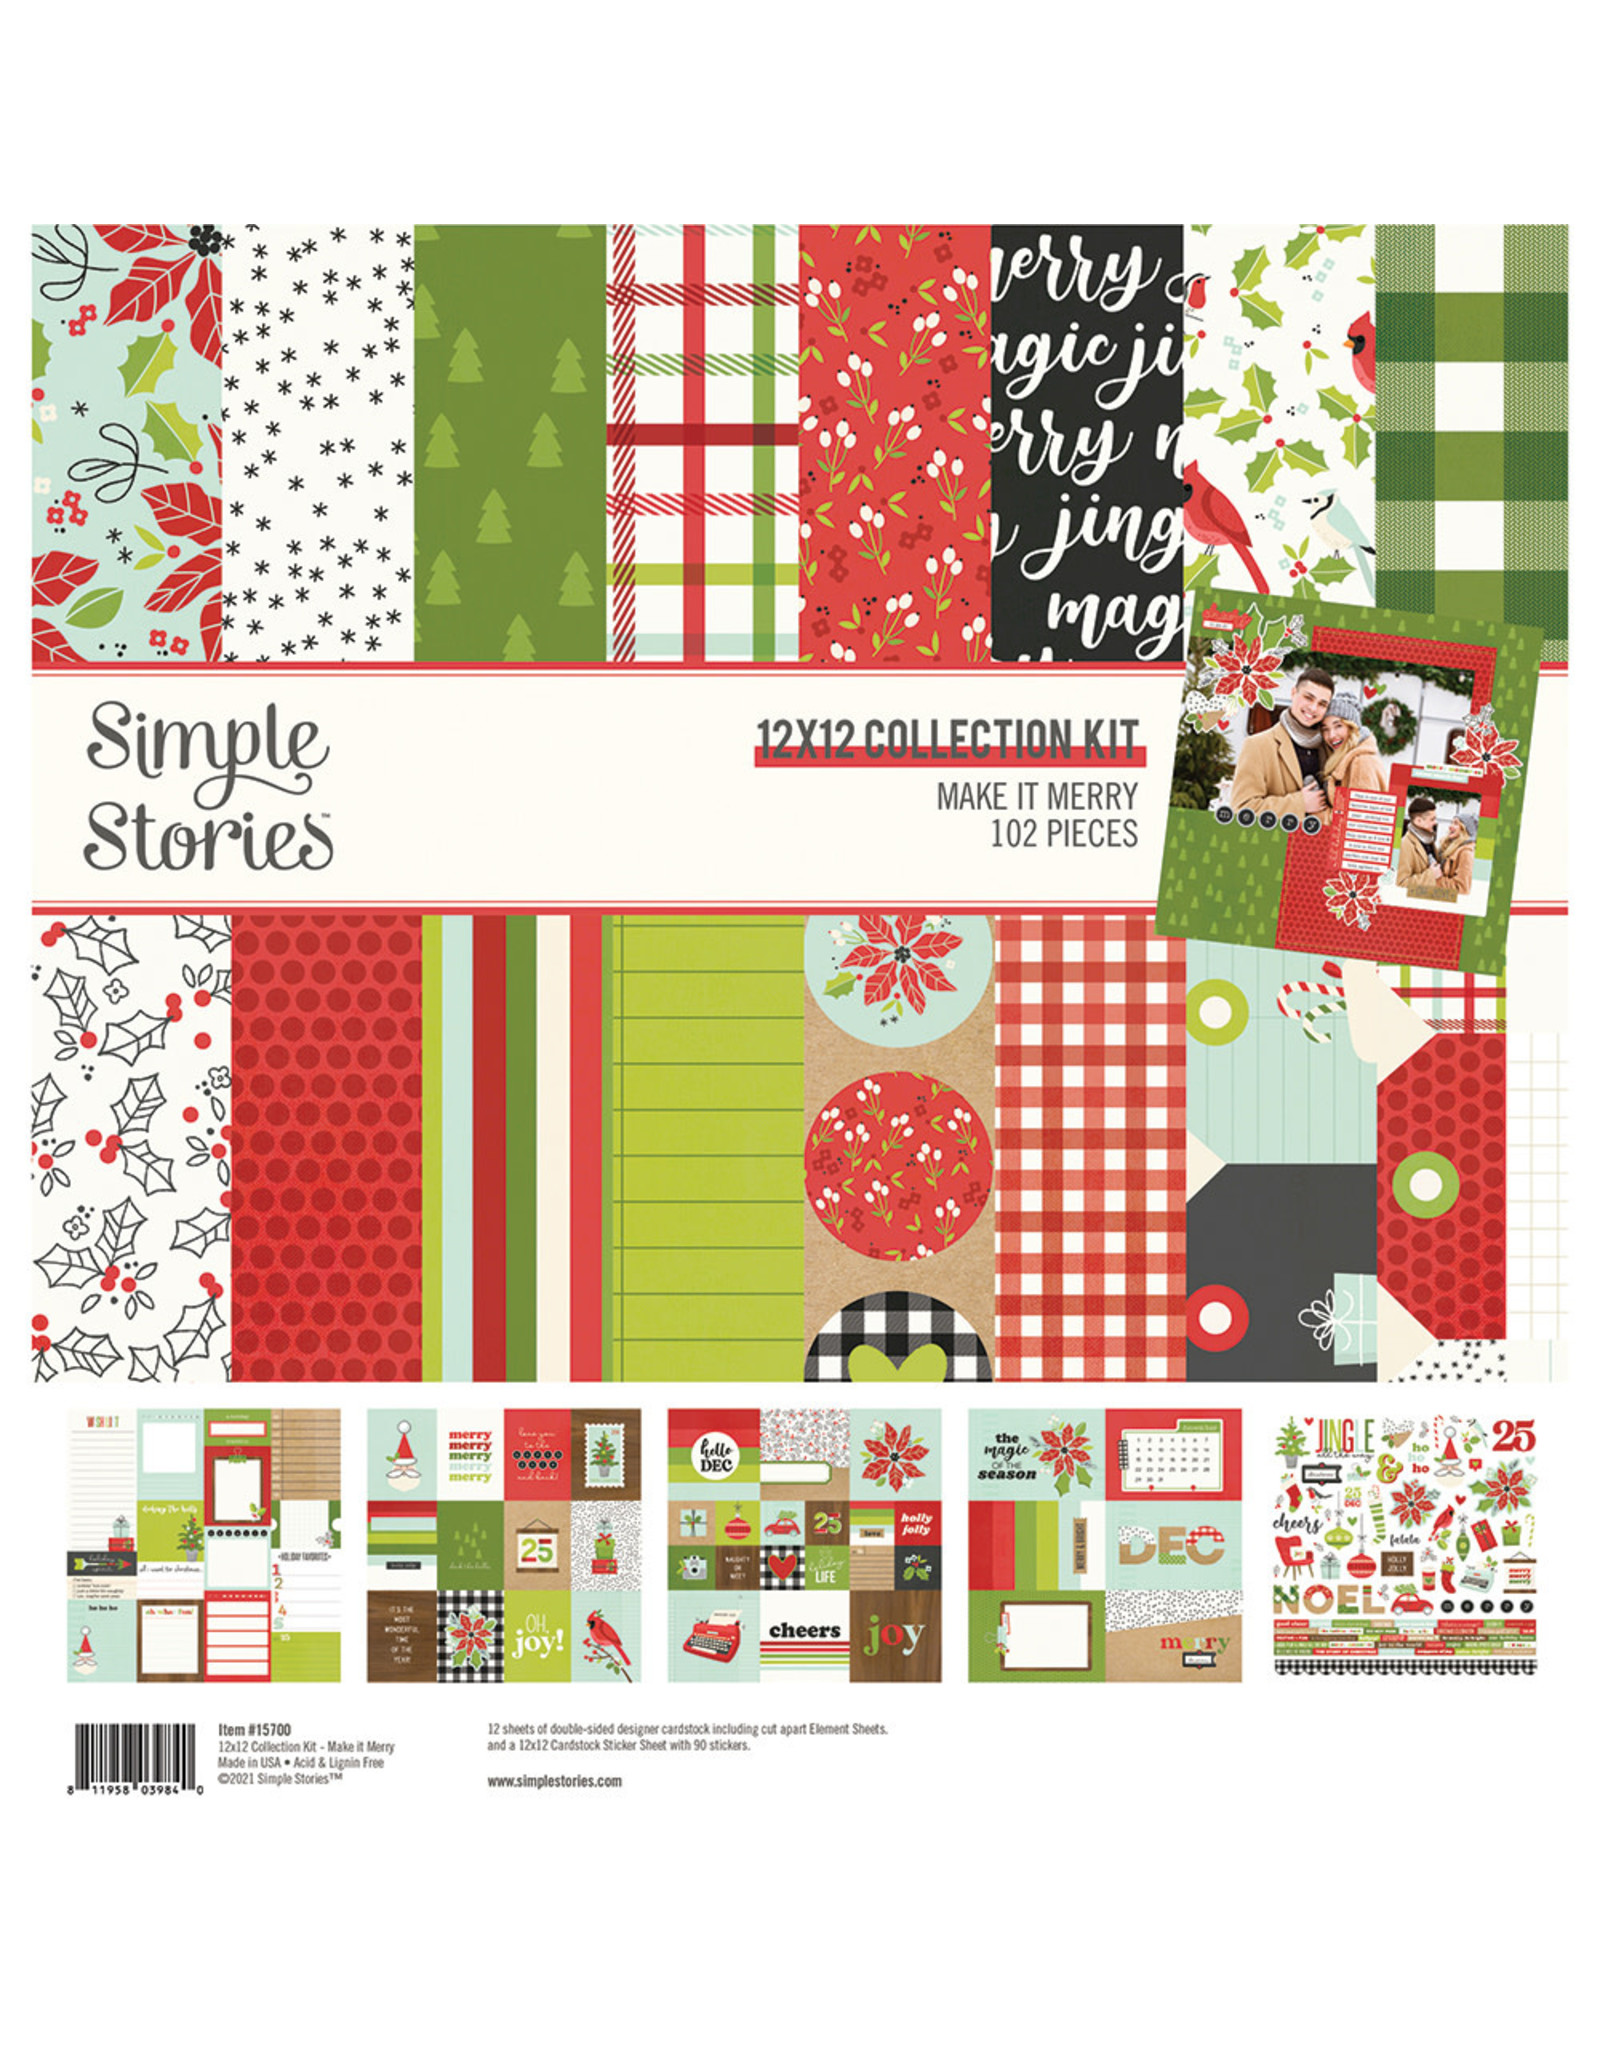 Simple Stories Make it Merry Collection Kit